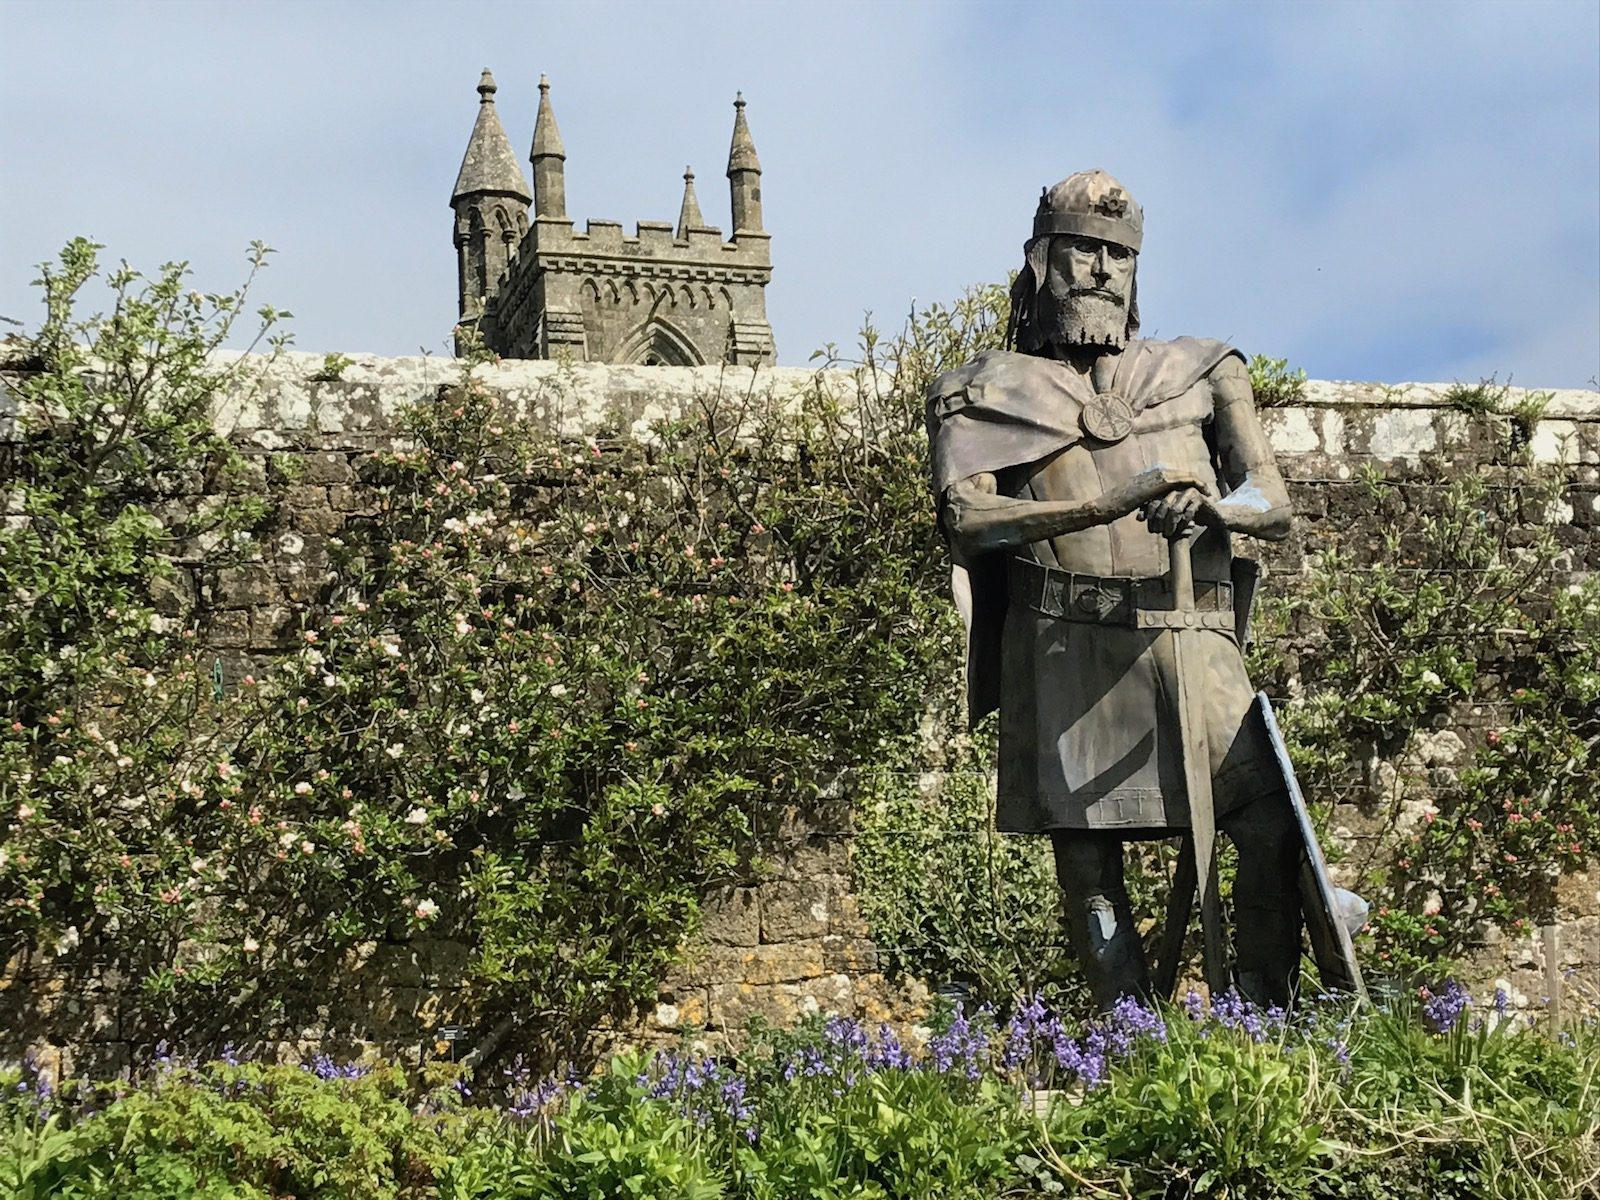 King Alfred at Shaftesbury Abbey